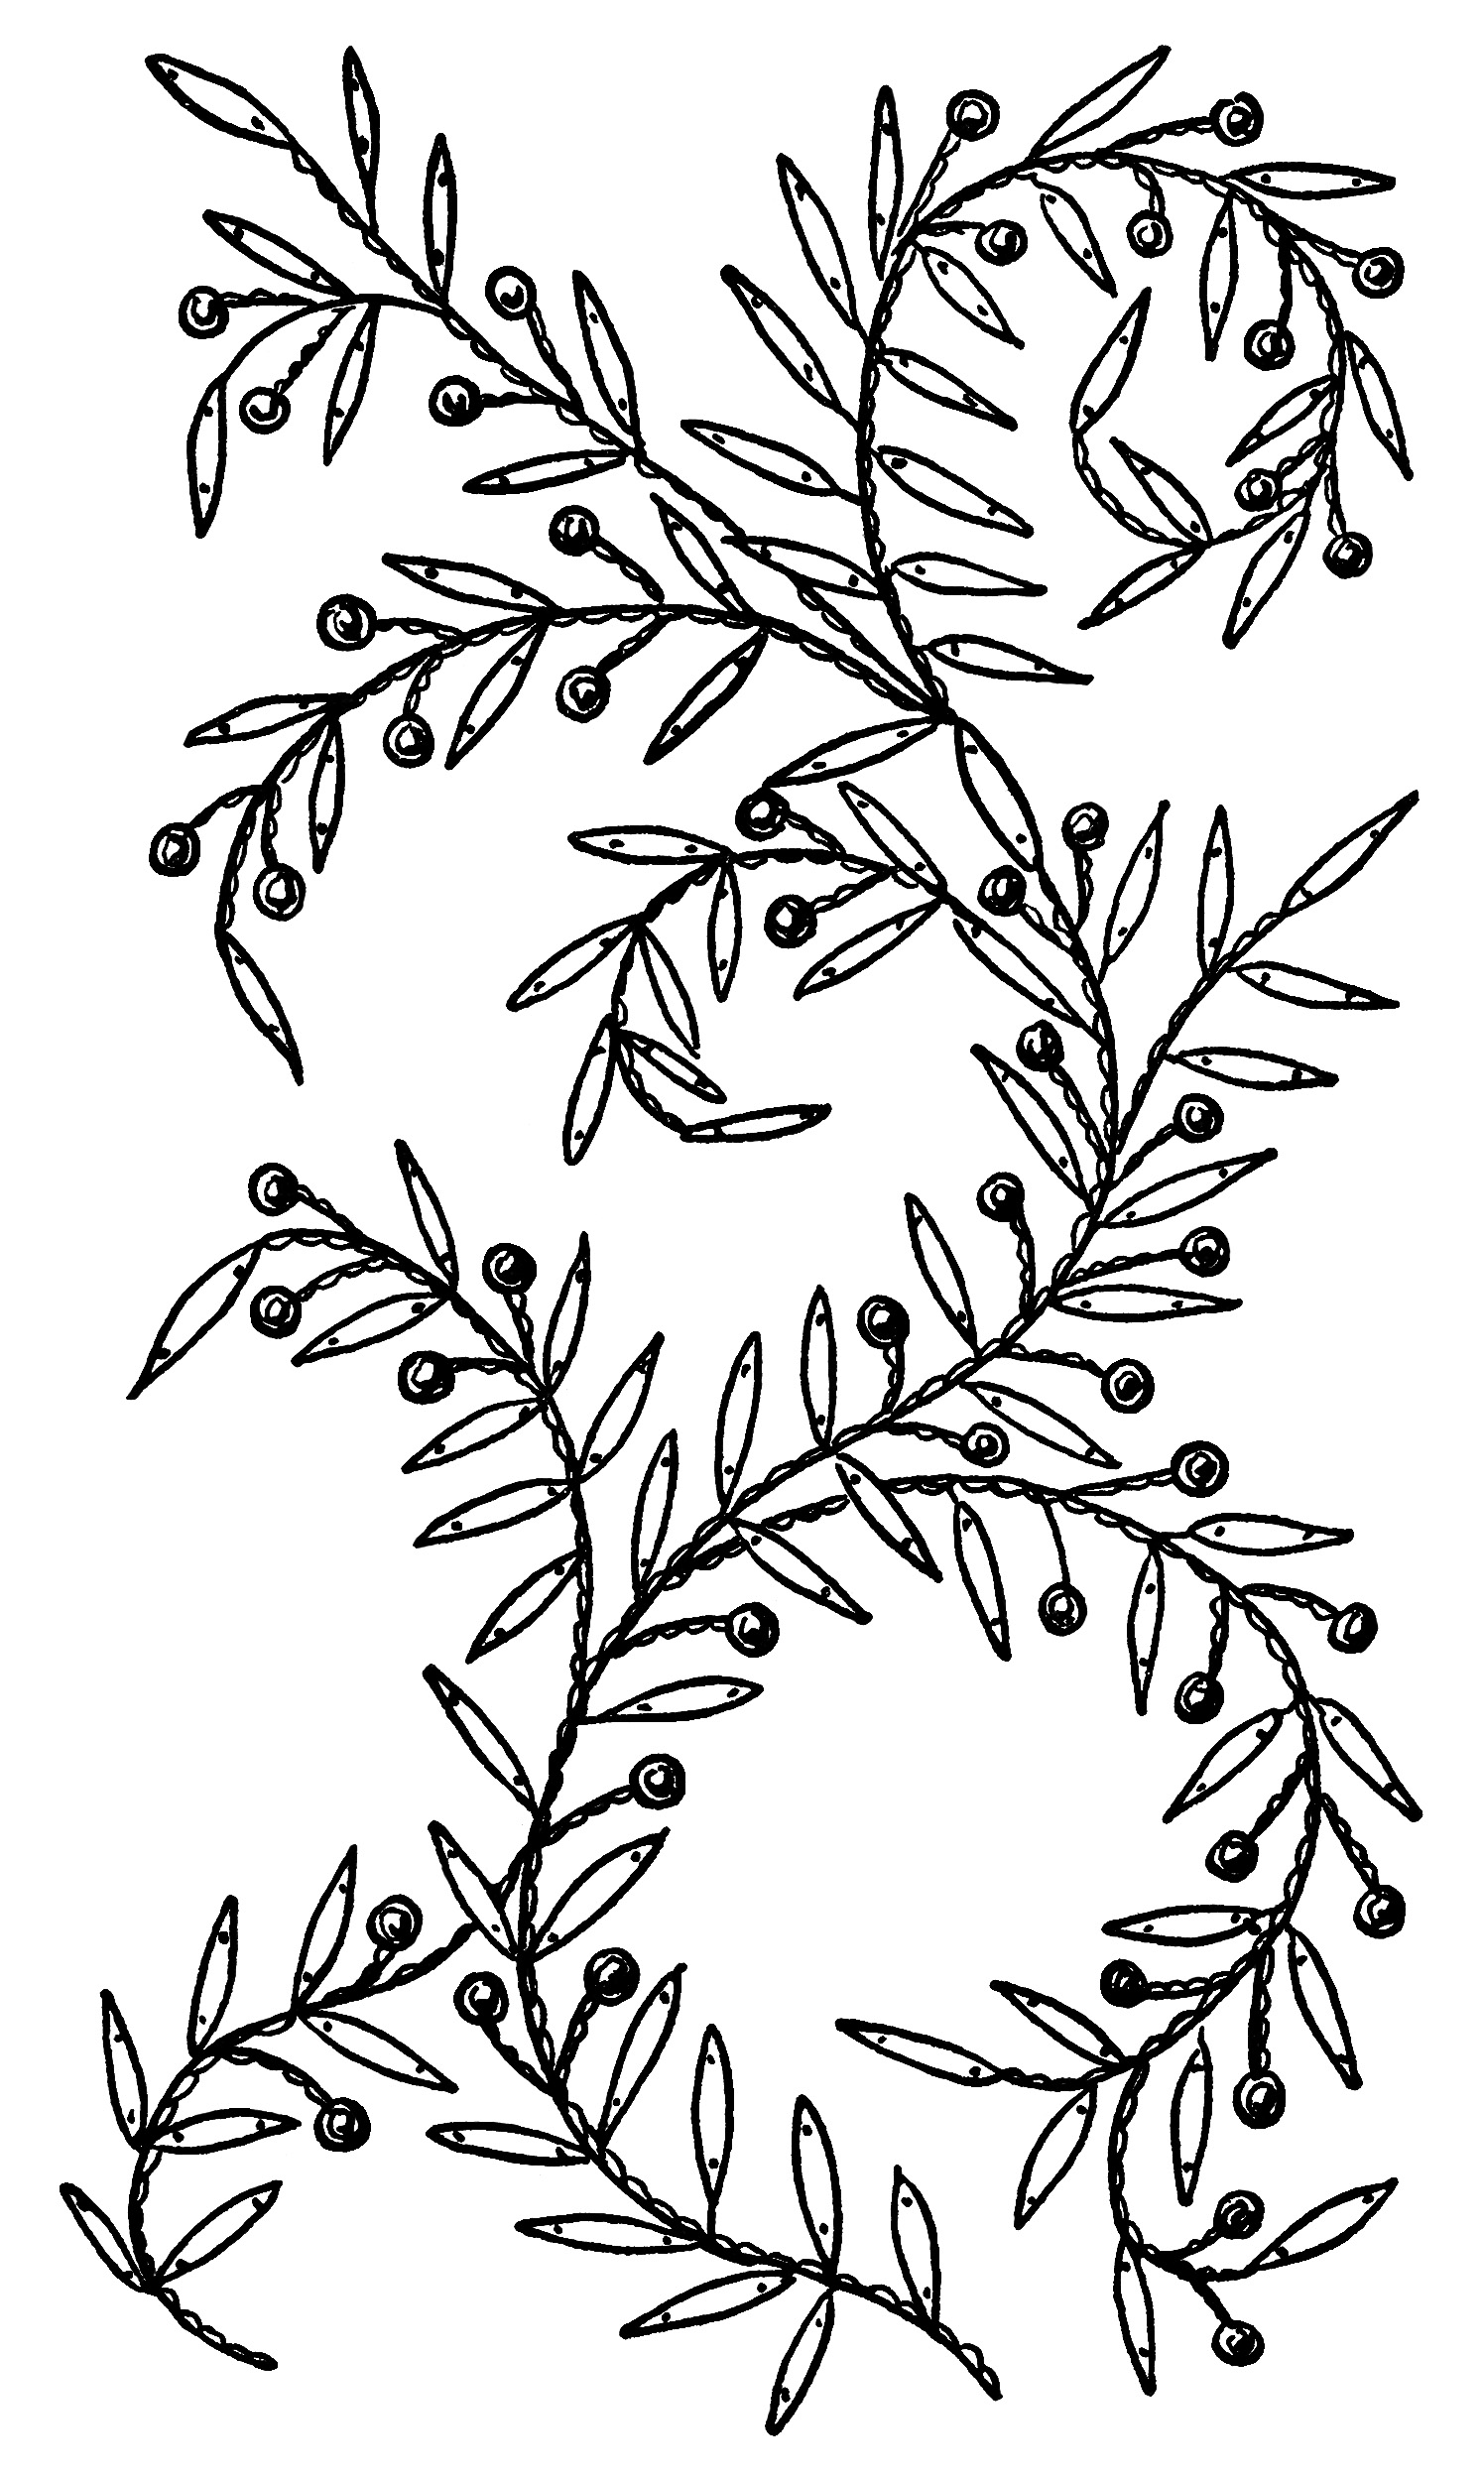 Leaves and berries embroidery design old design shop blog free vintage embroidery pattern clip art leaves berries bankloansurffo Choice Image